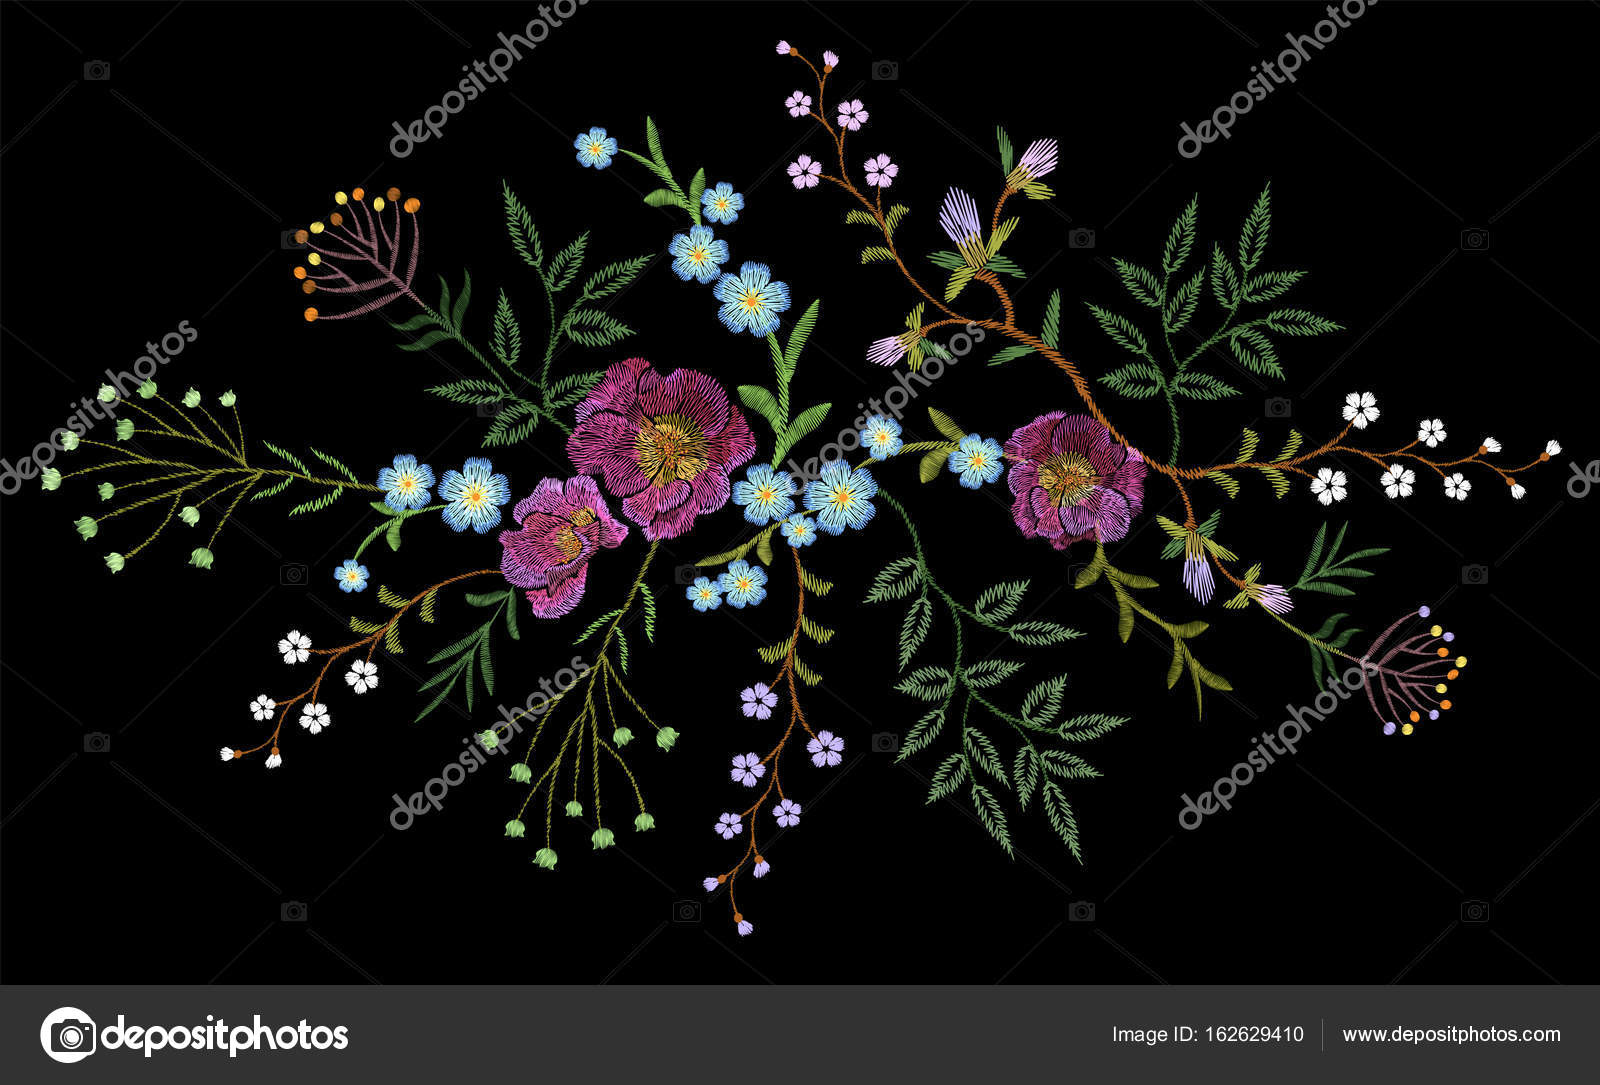 Embroidery Trend Floral Pattern Small Branches Herb Rose With Little Blue Violet Flower Ornate Traditional Folk Fashion Patch Design Neckline Blossom On Black Background Vector Illustration Stock Vector C Goodluckwithus 162629410